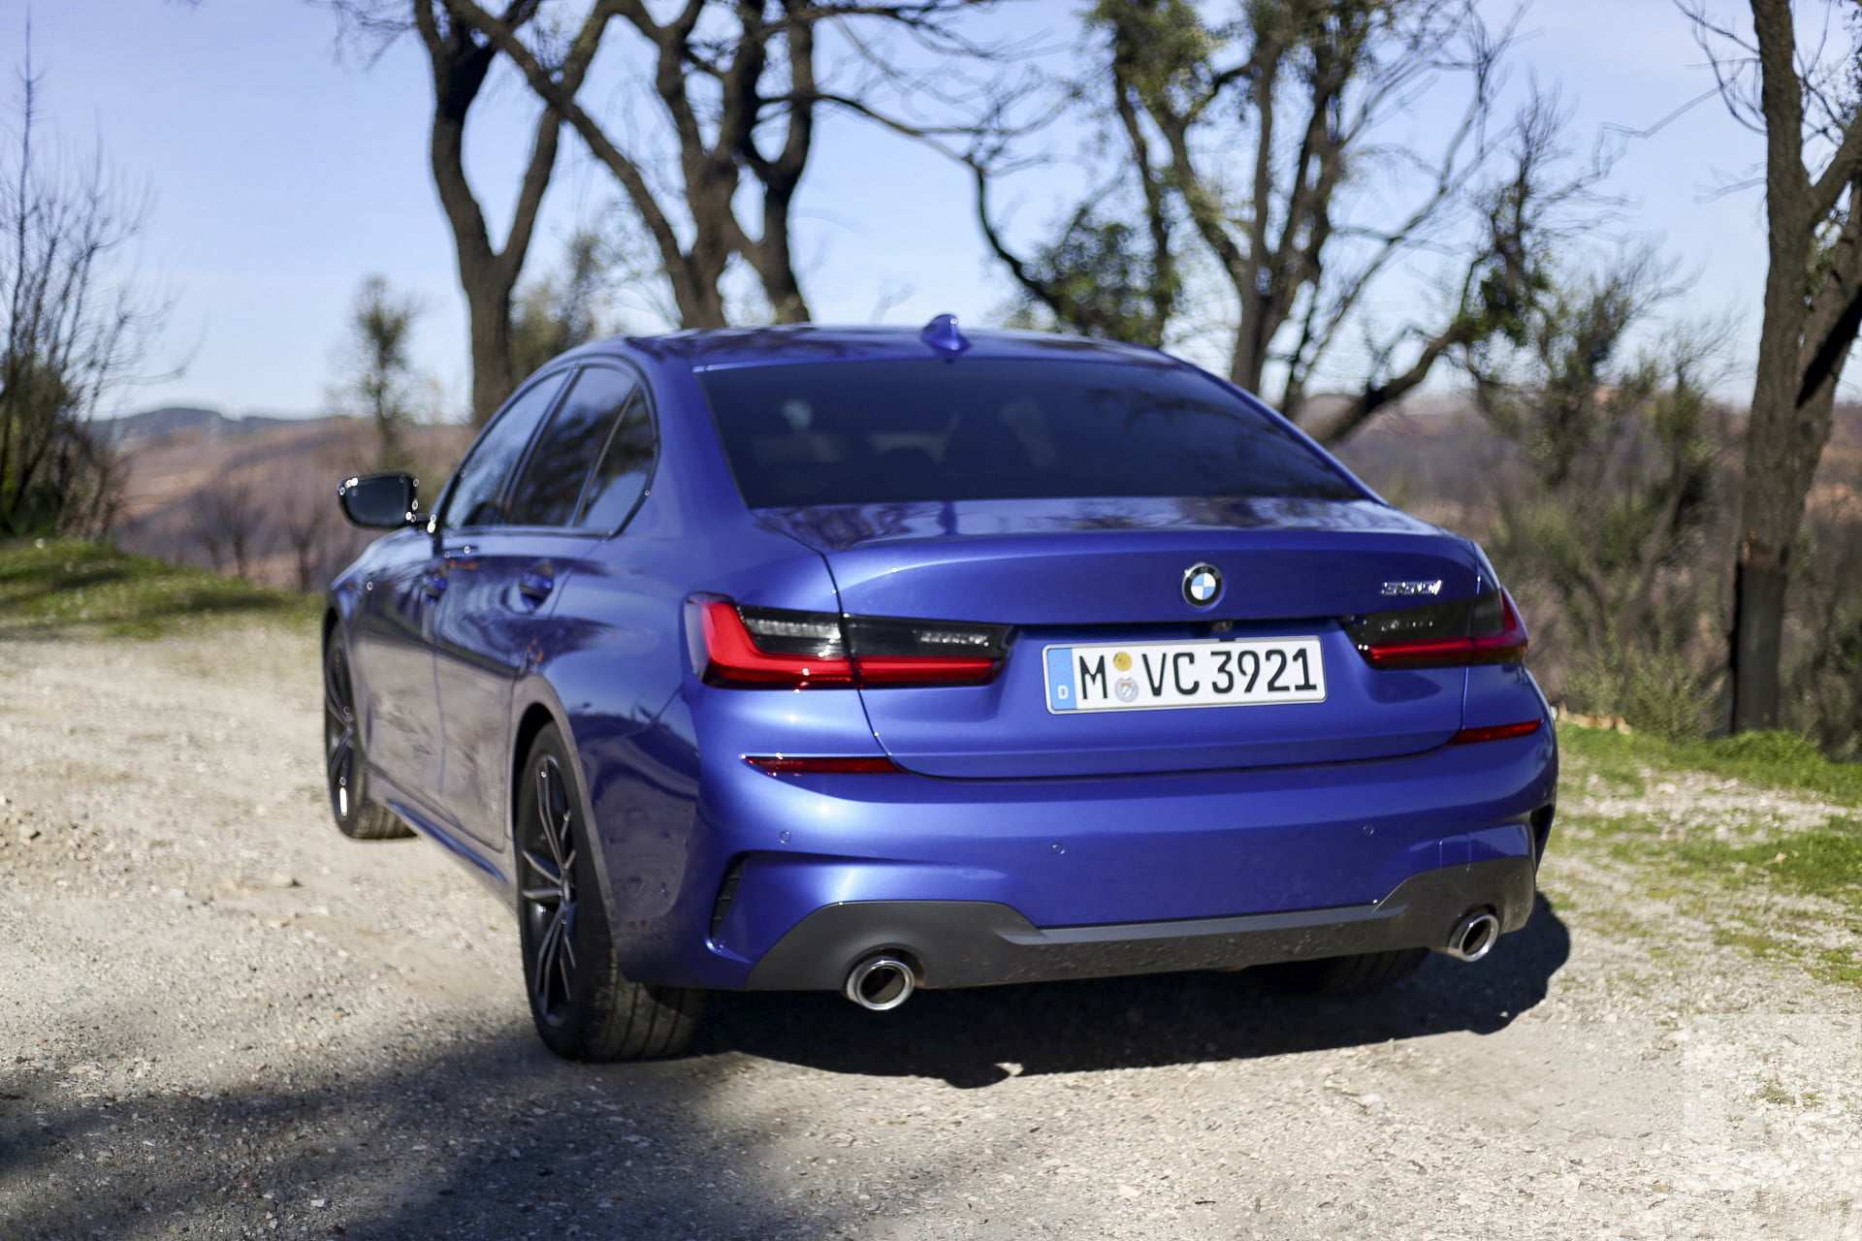 6 All New Bmw F6 6 New Review with Bmw F6 6 - Car Review ..